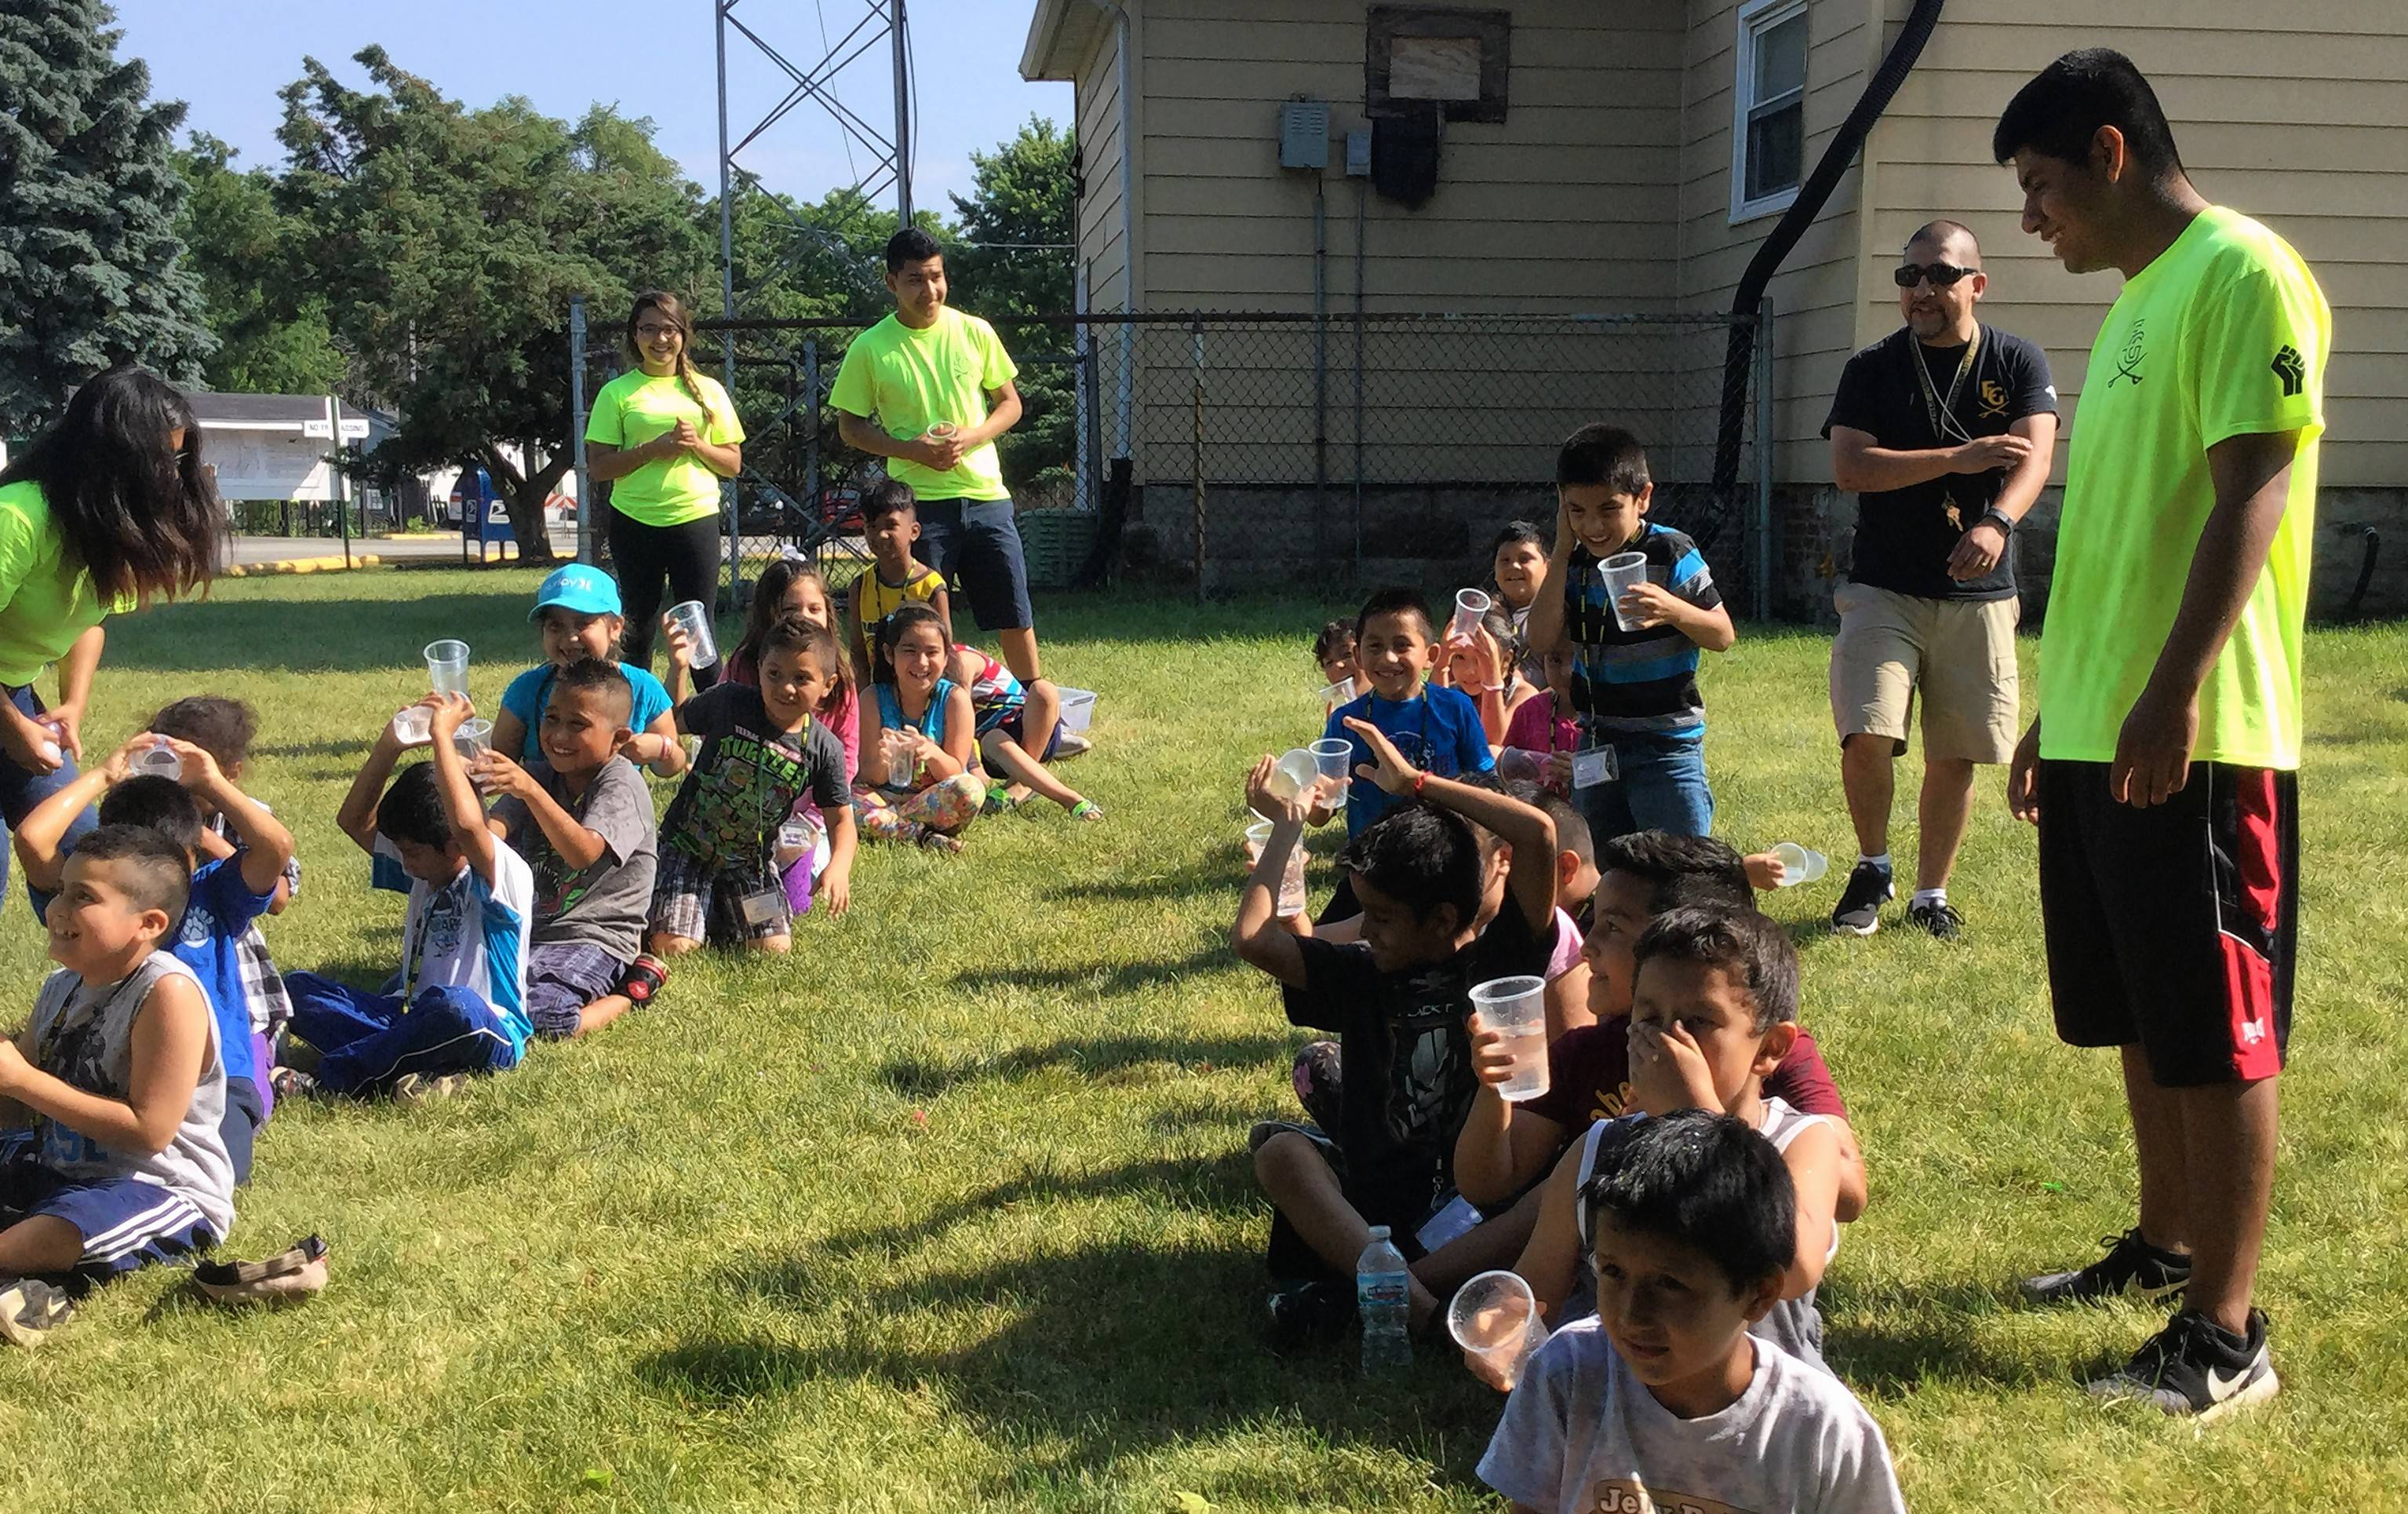 Students from Elk Grove High School created and volunteered as staff at a weeklong summer camp for children living in a mobile home community who do not live in a park district. Harper Promise scholar Maria Anzueto, left in the bright green shirt, helps leads children in an activity. Elk Grove student volunteers Dayanara Grimaldo, Roger Aguilera and Arturo Leaurano also lead the children's activity.